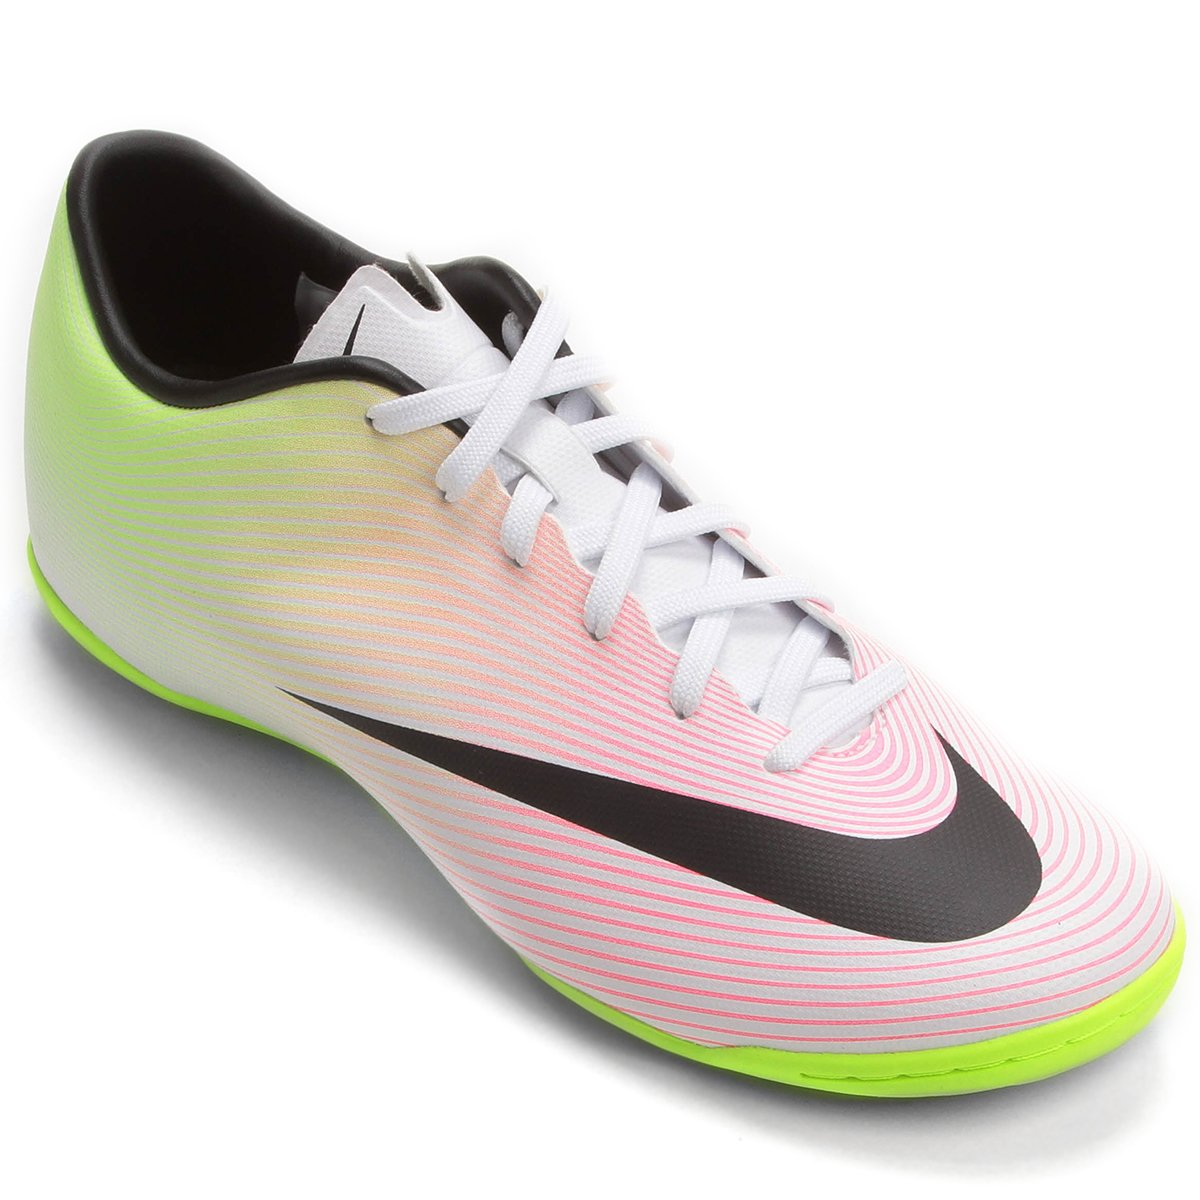 buy online 3569d 1b4a4 Chuteira Futsal Nike Mercurial Victory 5 IC - Compre Agora   Netshoes